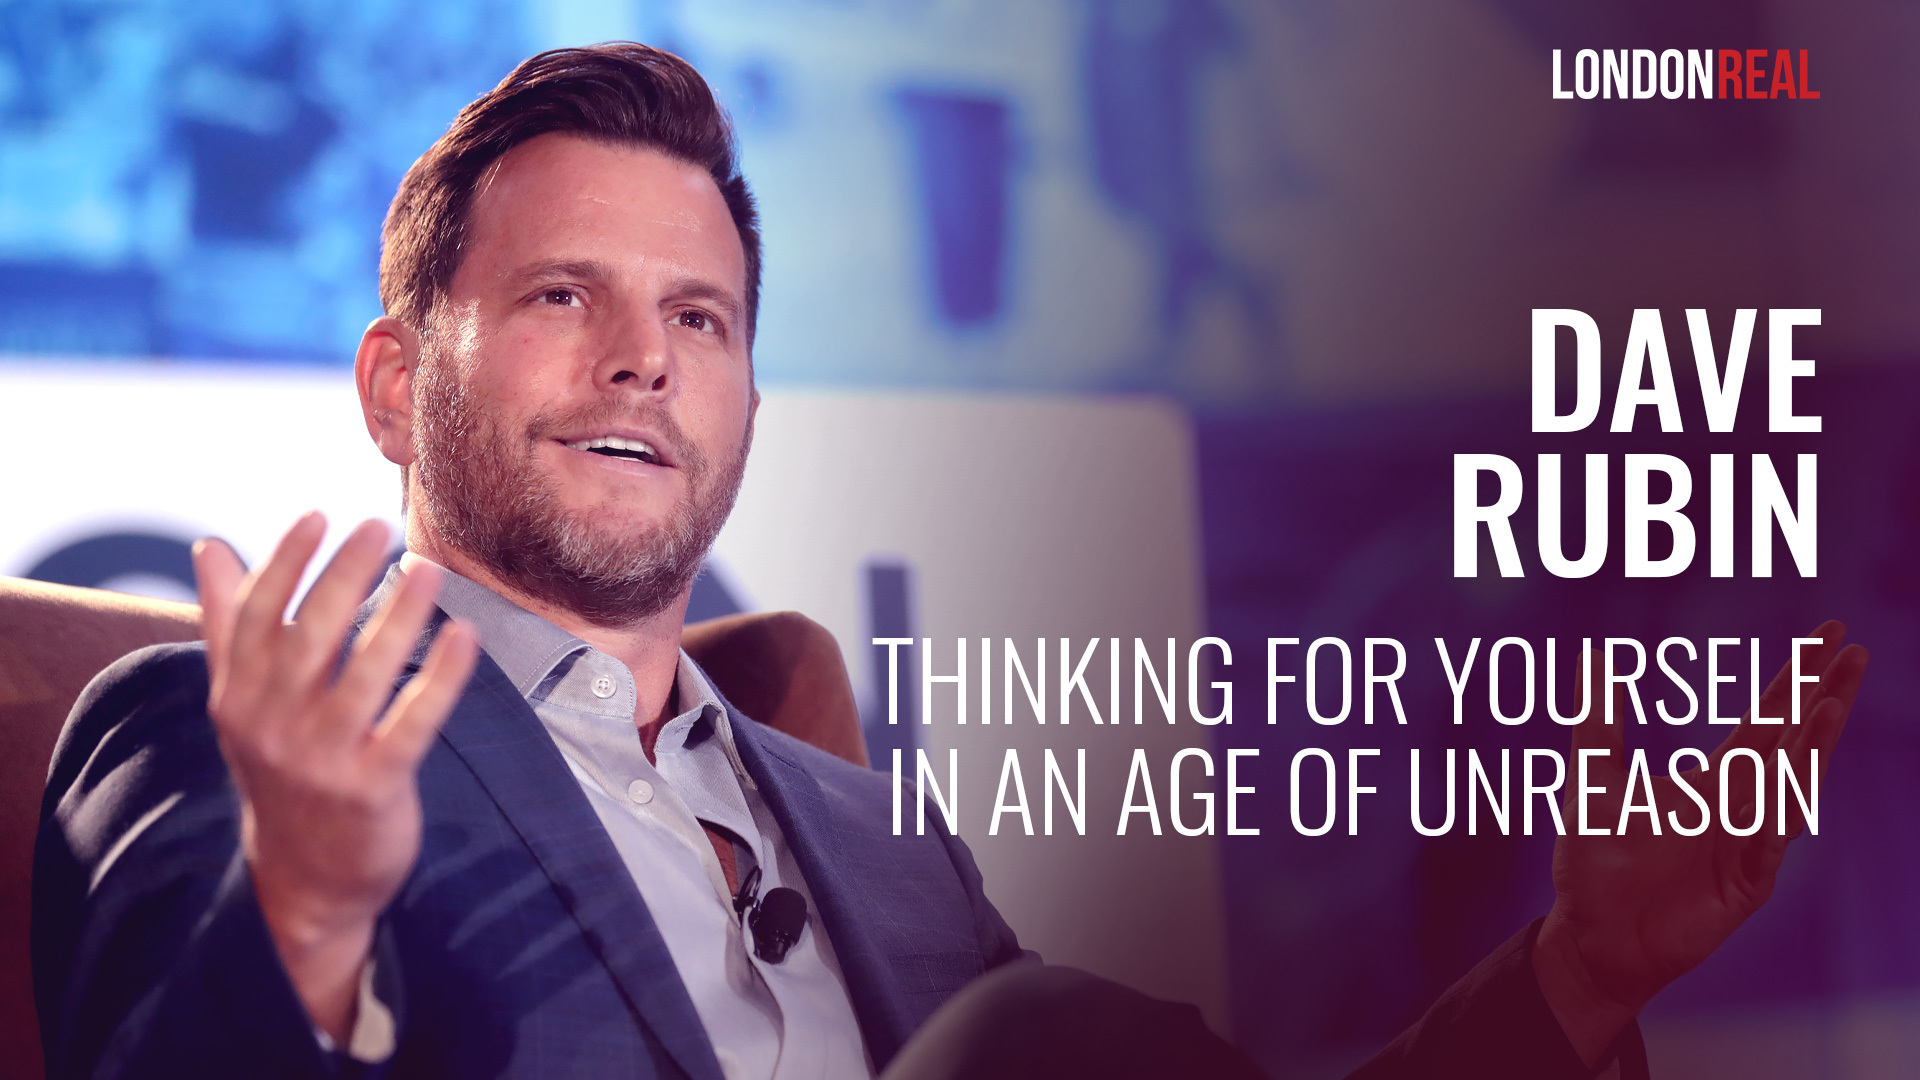 Dave Rubin - Thinking For Yourself In An Age Of Unreason